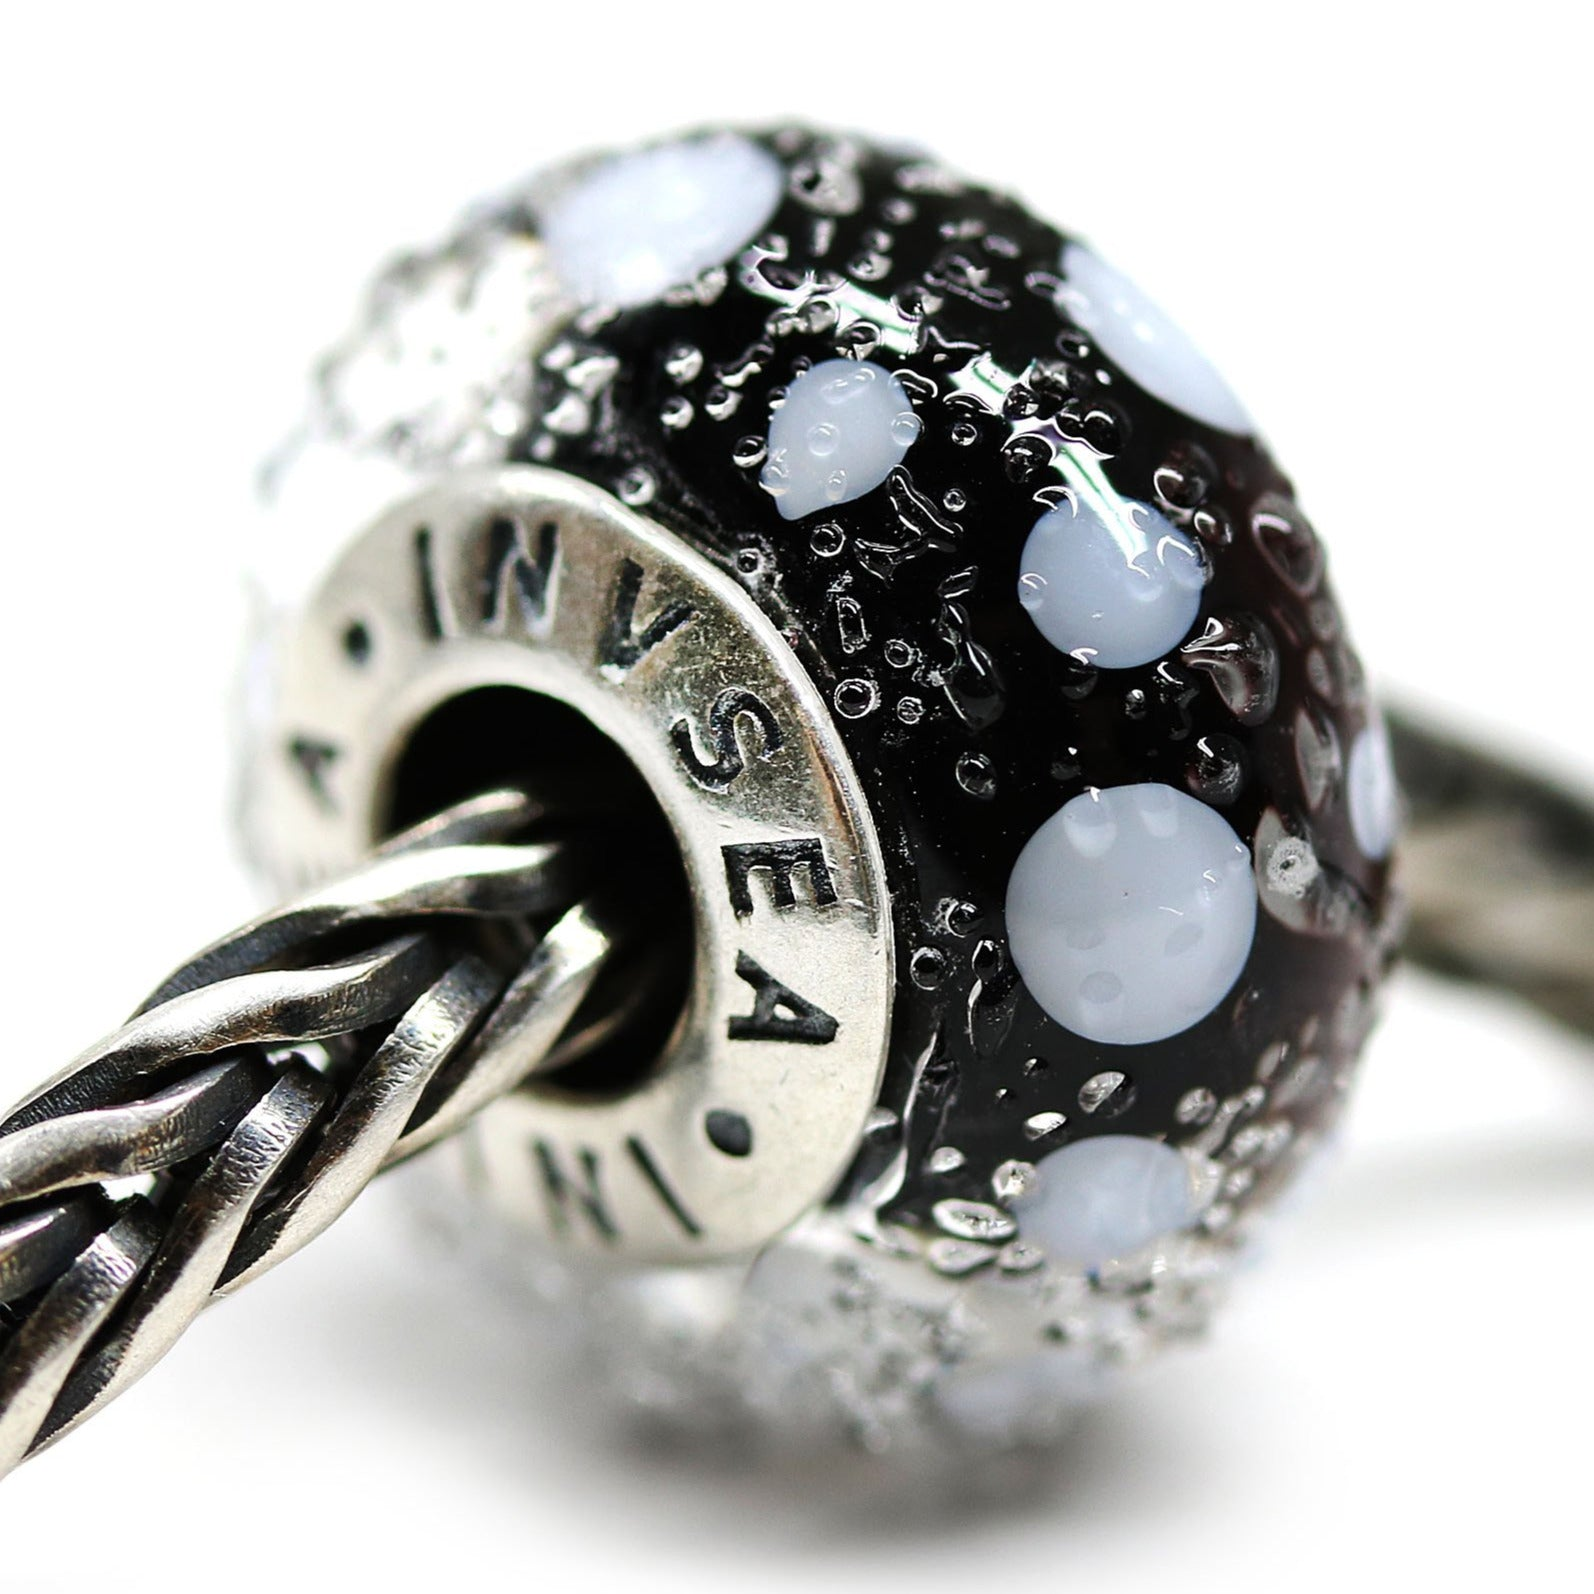 Pandora style charms black and white Artisan lampwork large hole beads